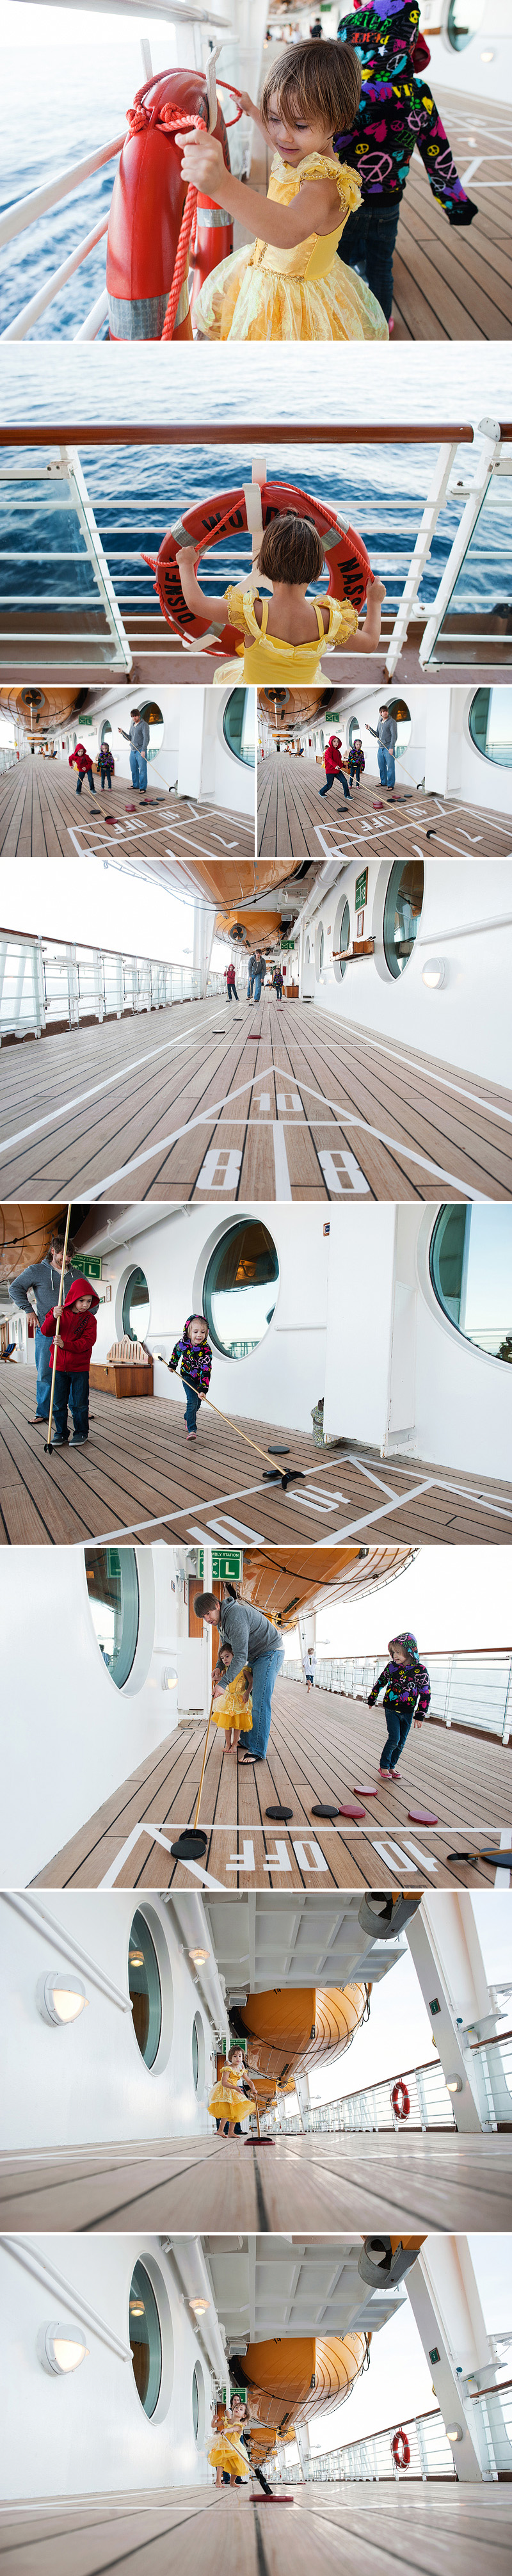 deck games and shuffleboard on disney cruise